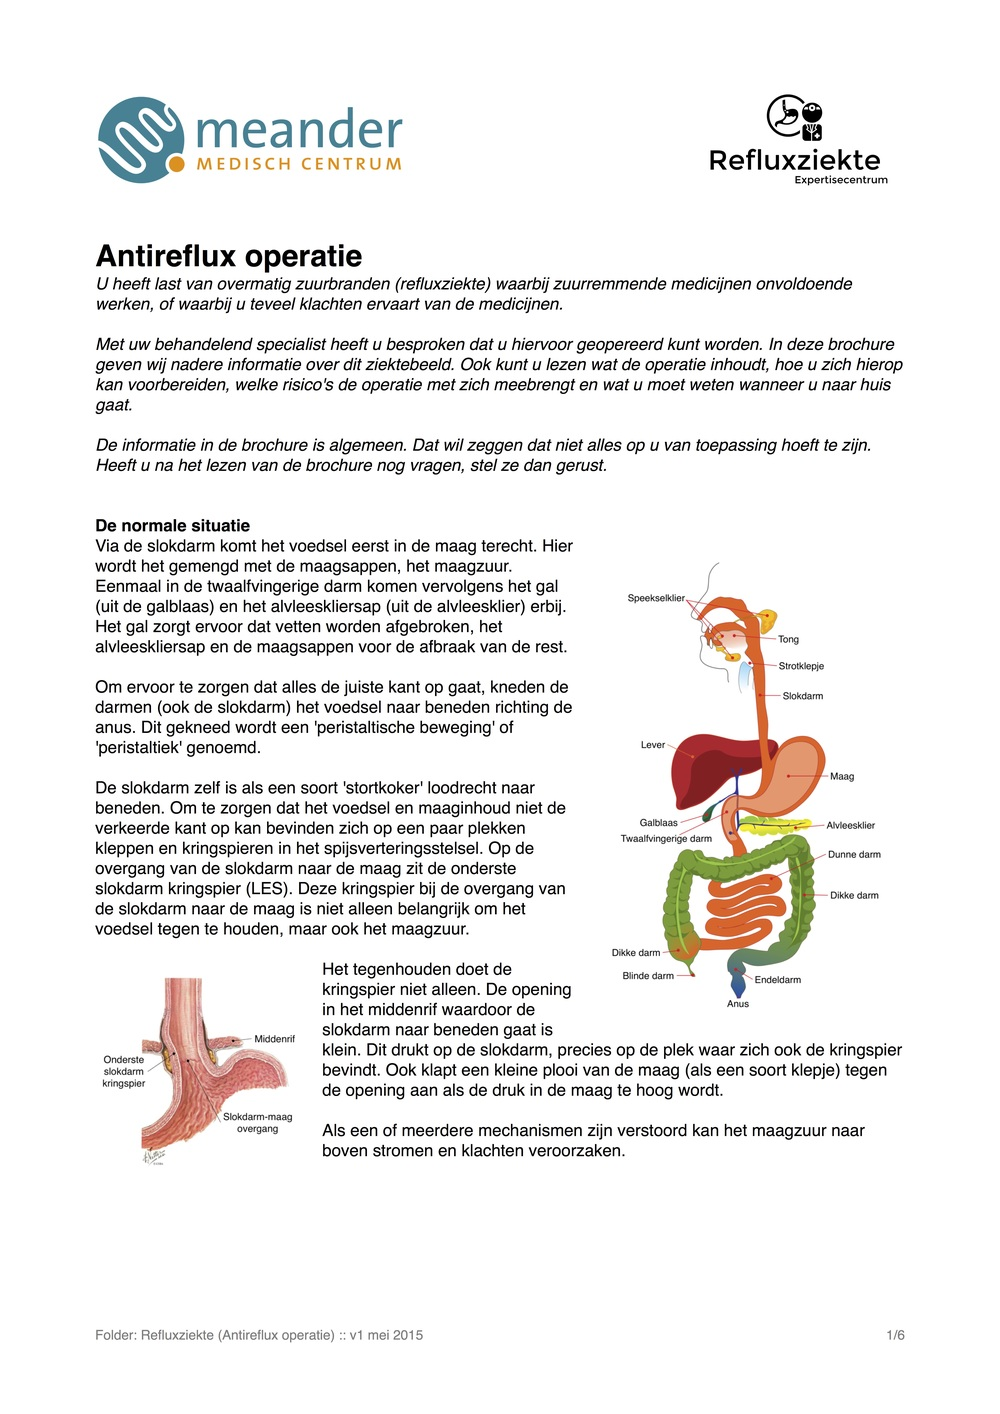 Folder antireflux operatie.jpg